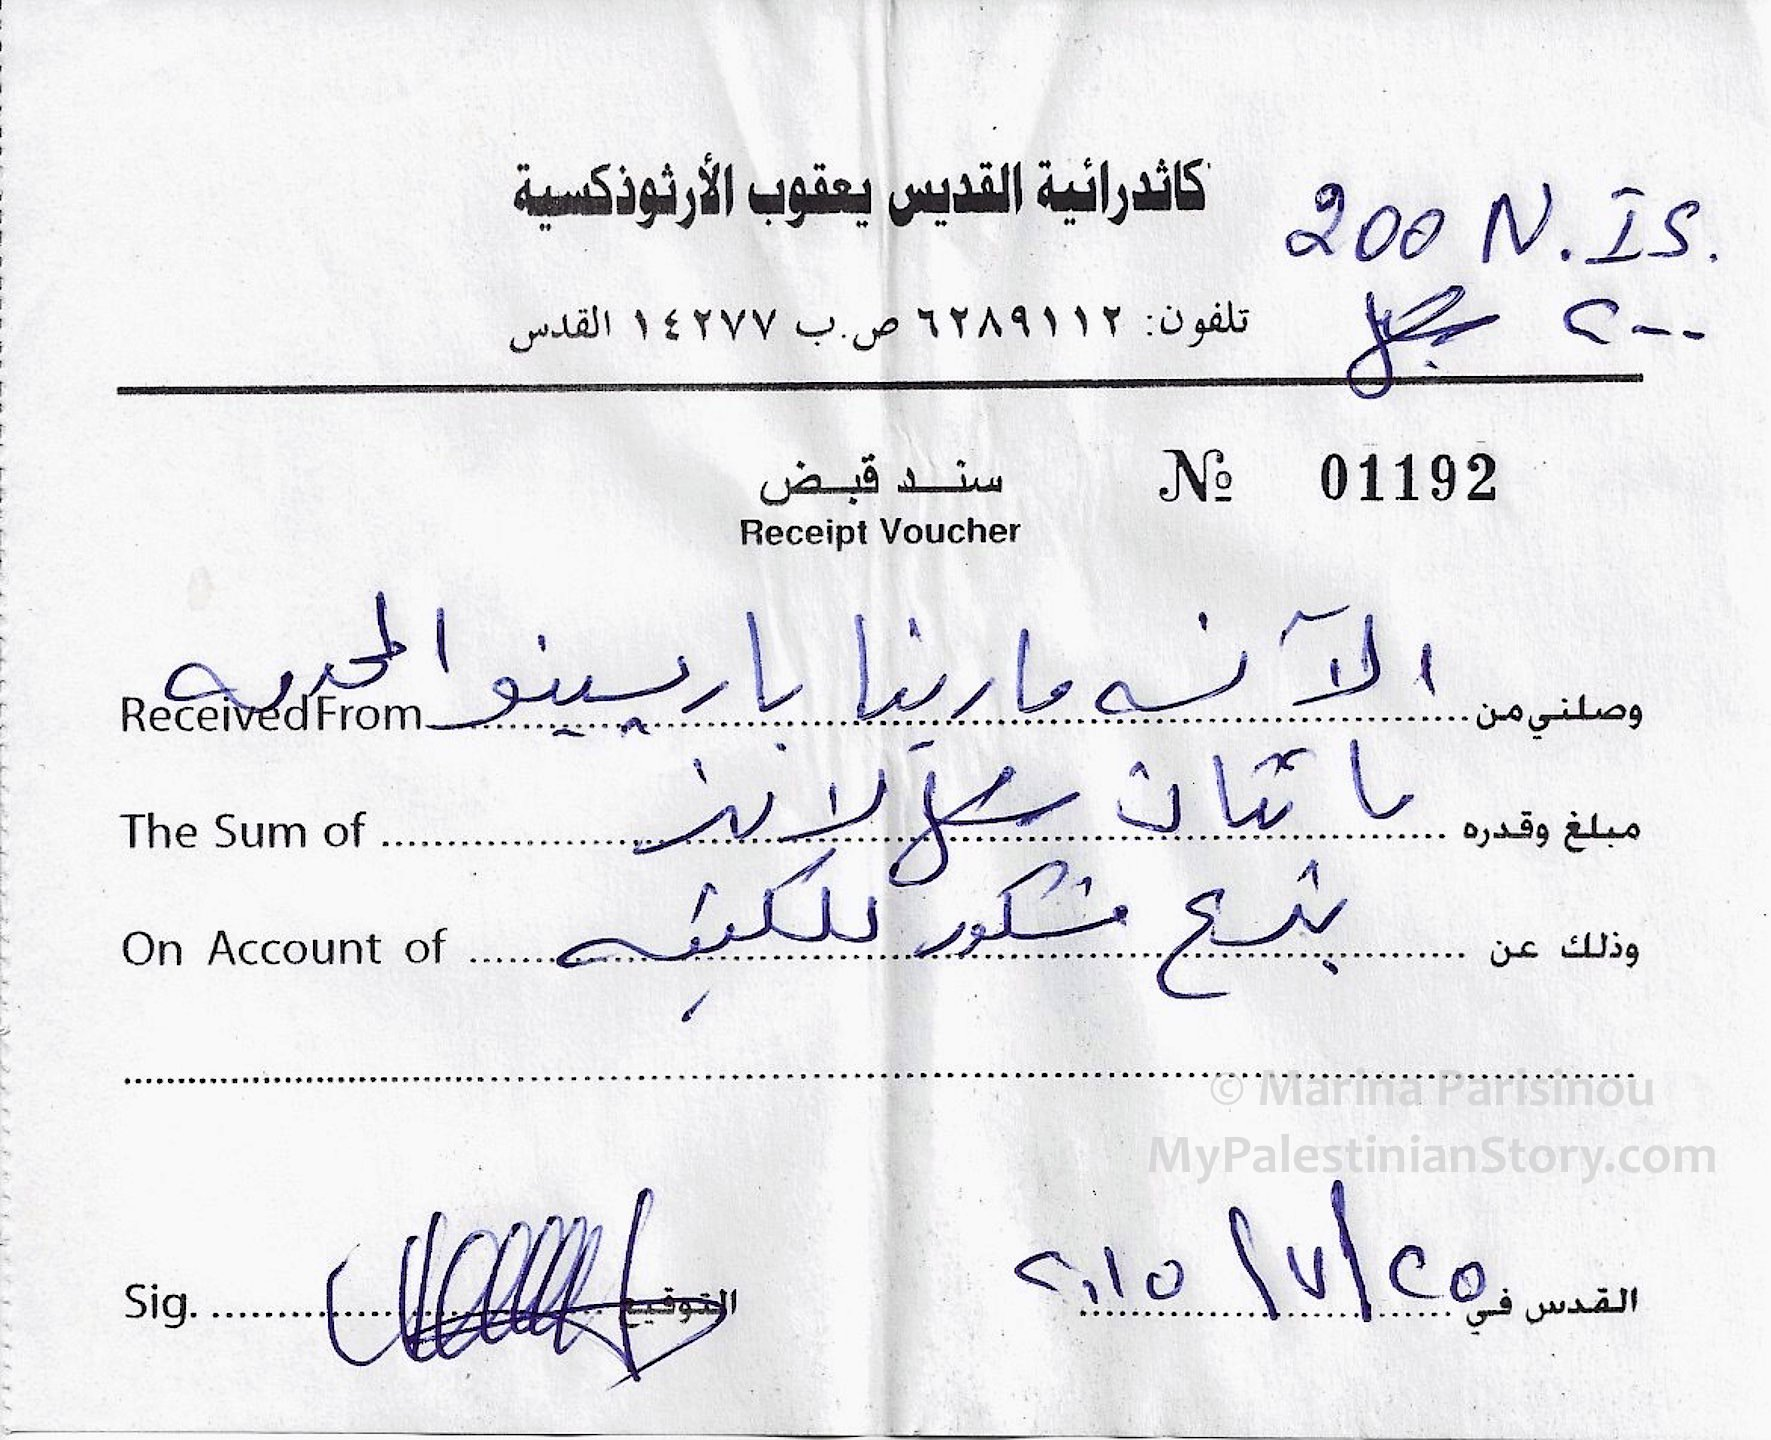 Receipt of my donation in exchange for photos of the Register